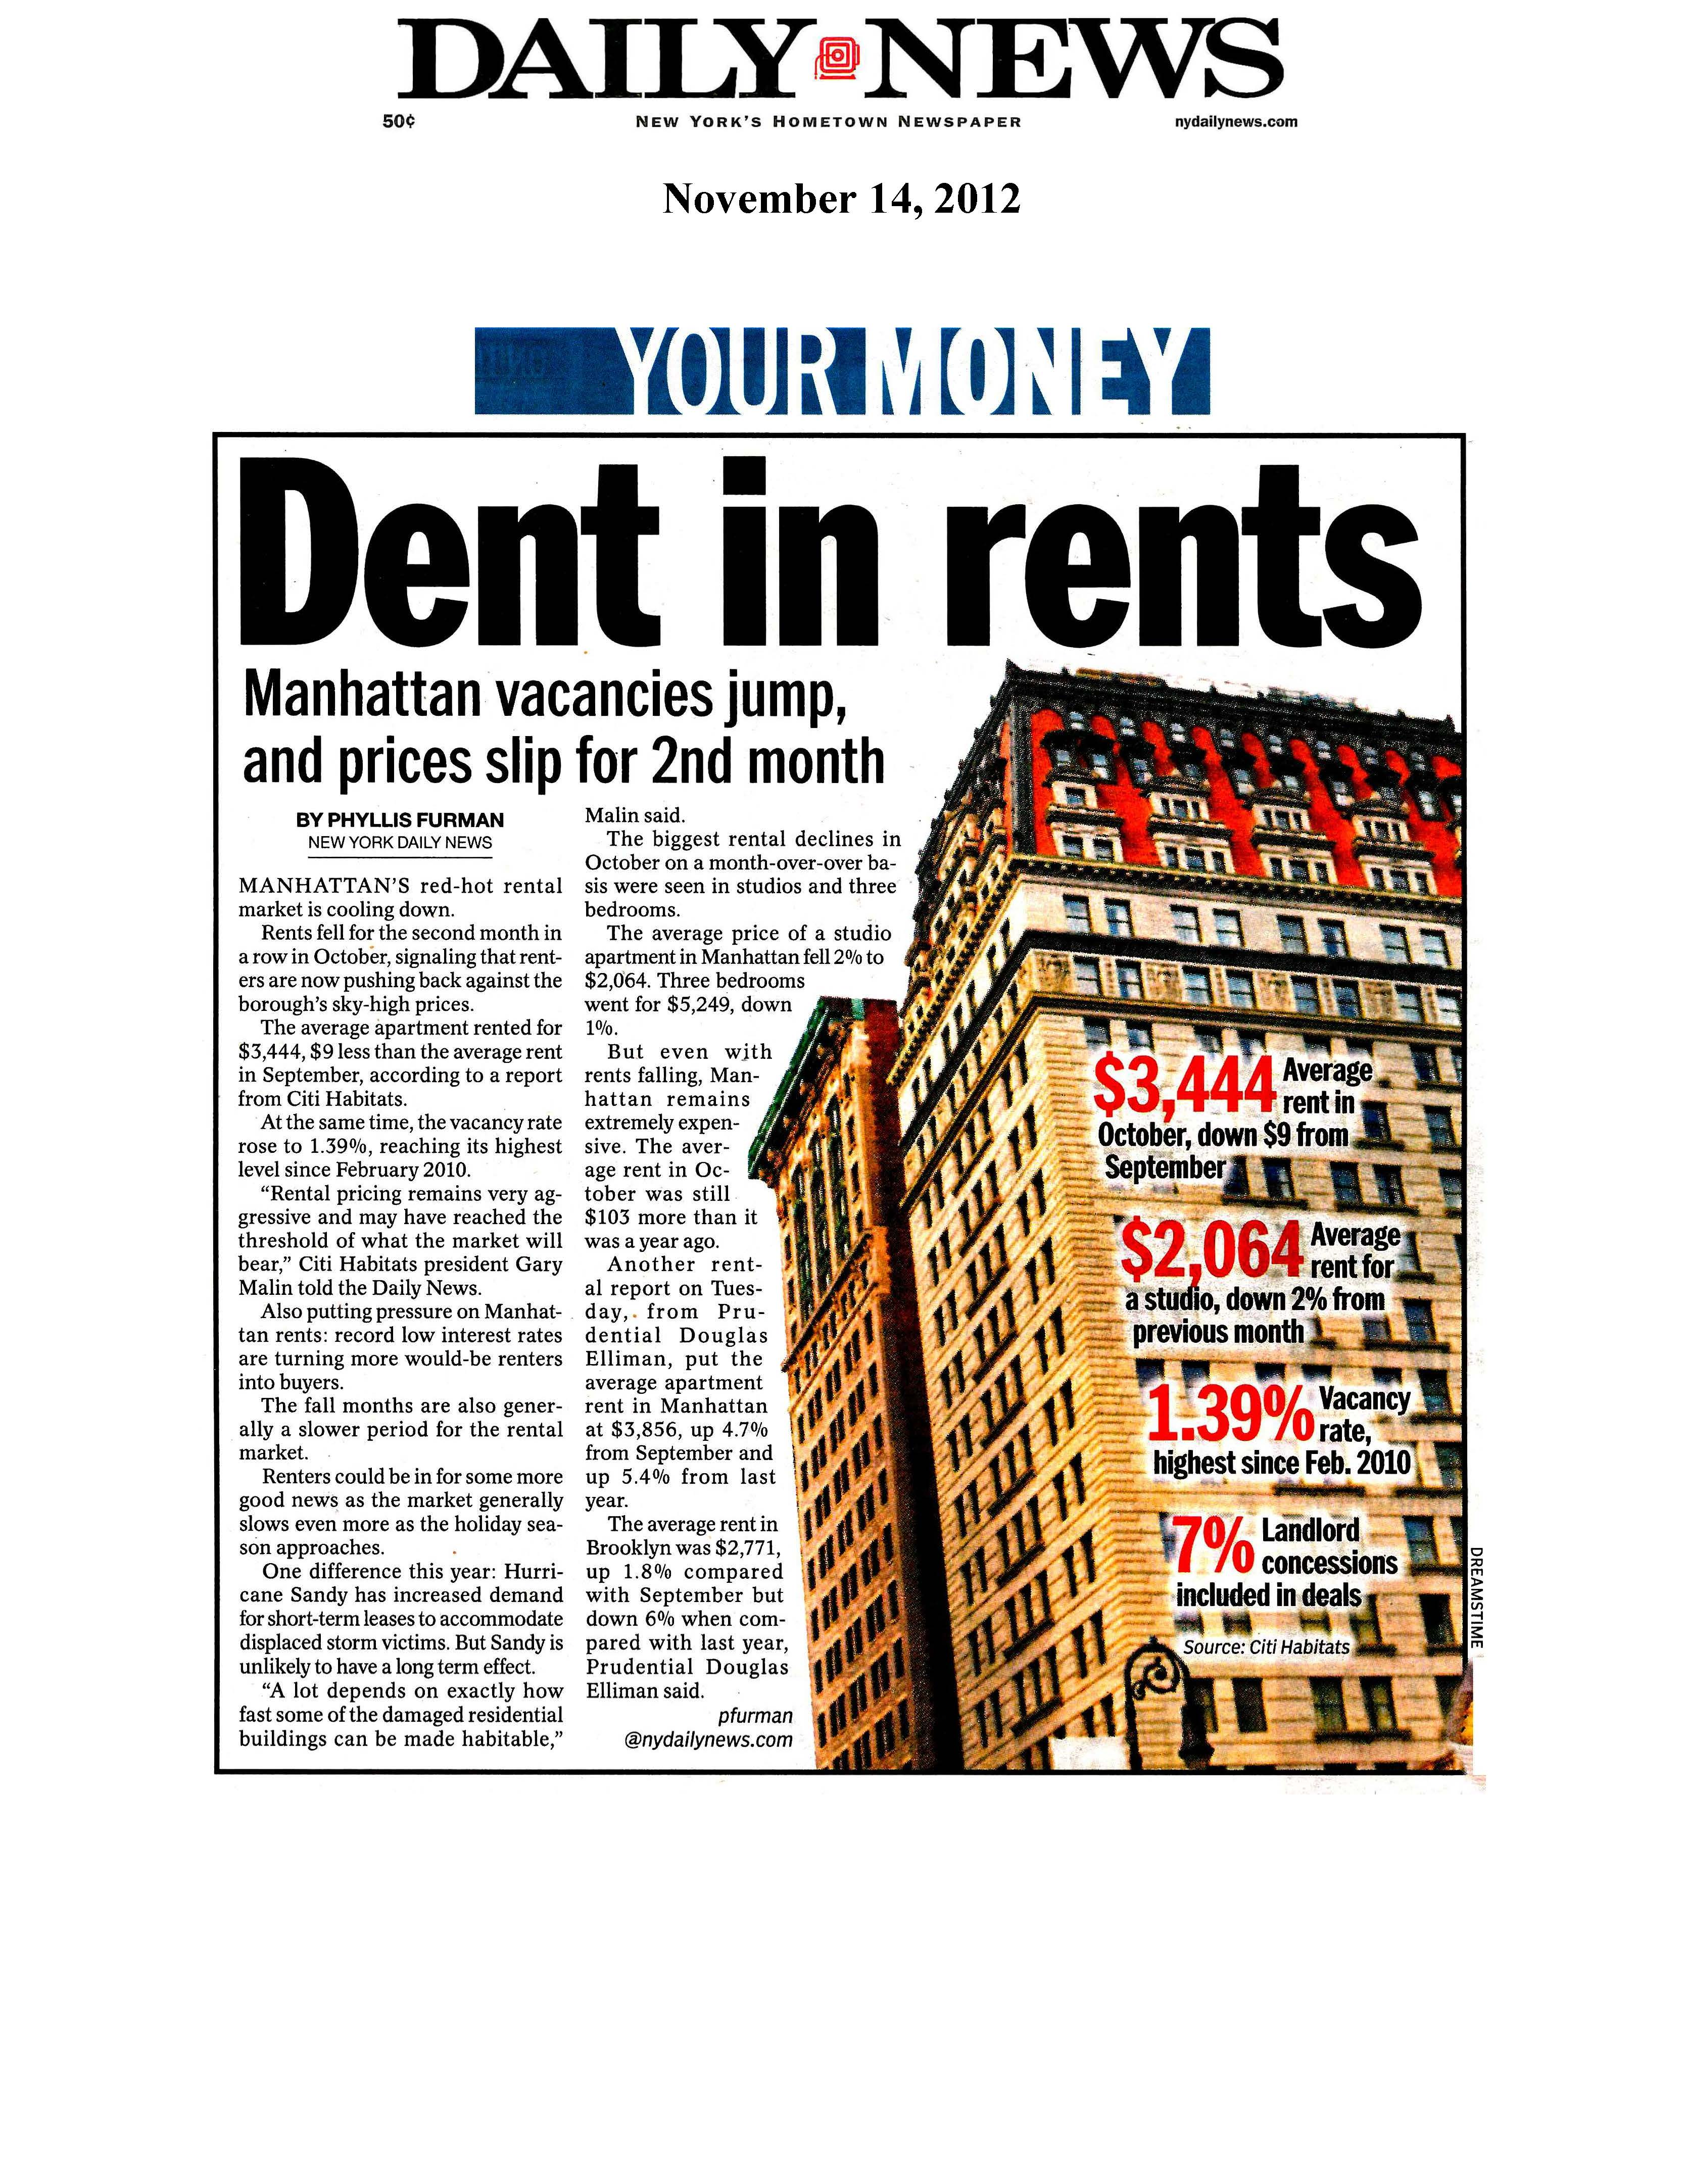 11_14_12 Daily News - Dent in rents